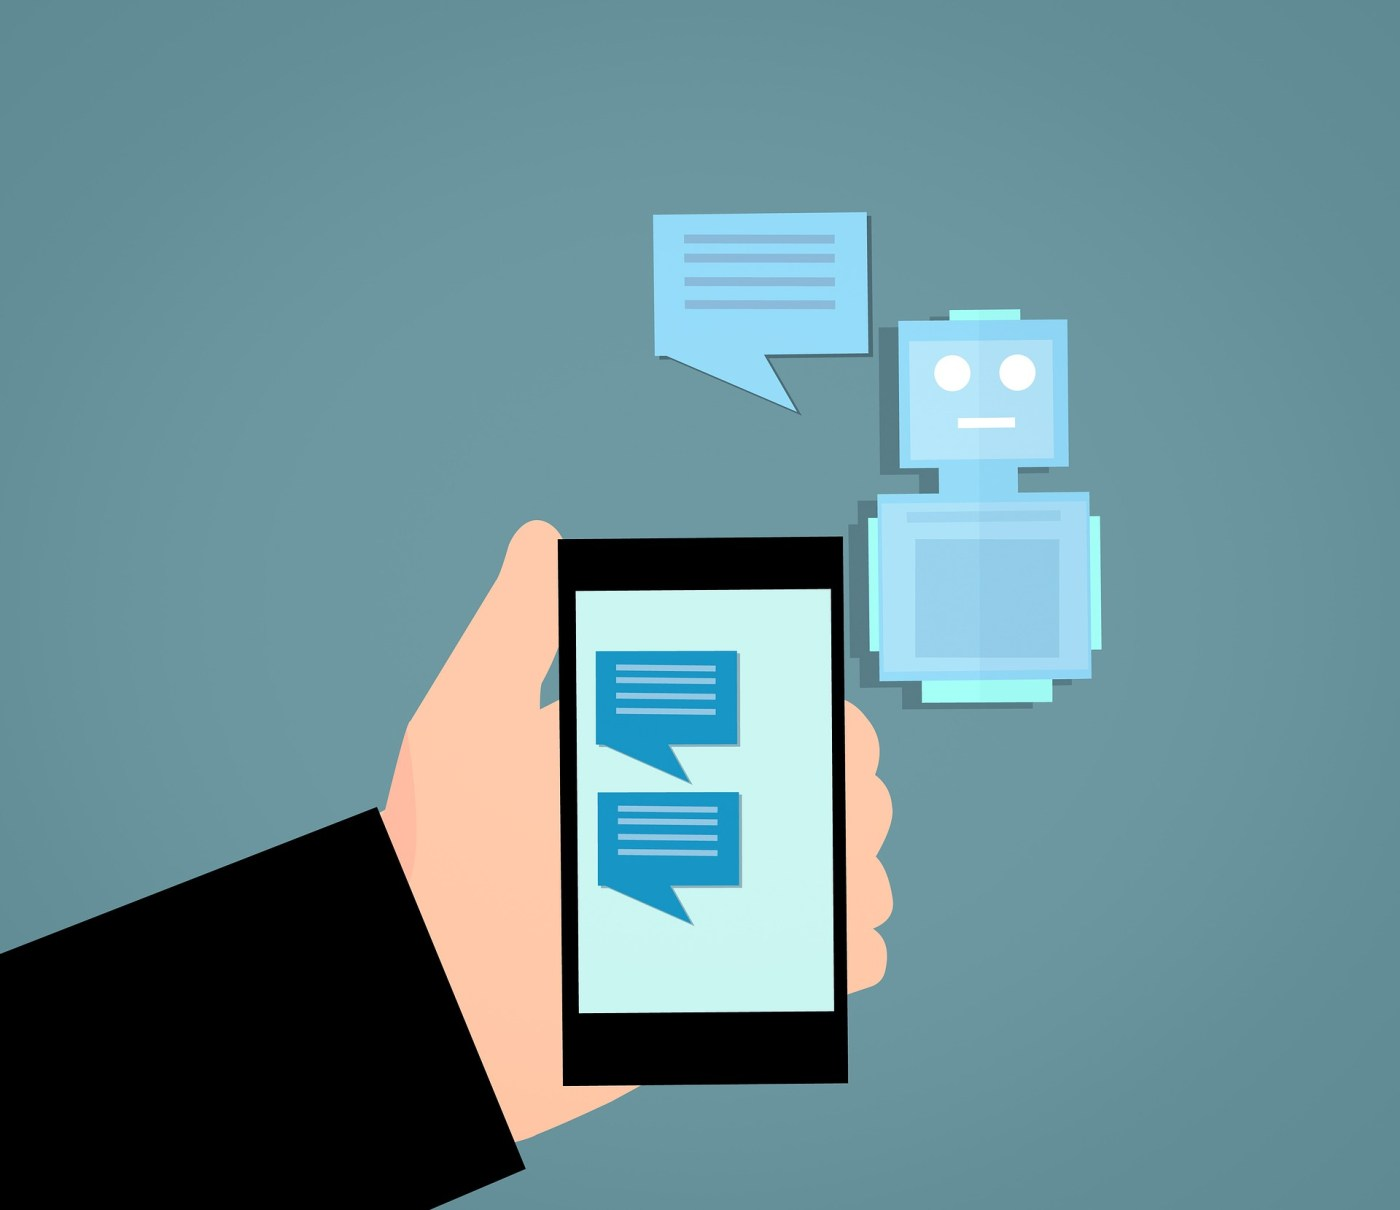 An infographic of a chat bot. There is a hand holding a phone which has blue message icons on the screen. Right of the phone there is a small cartoon robot which suggests a chat bot.